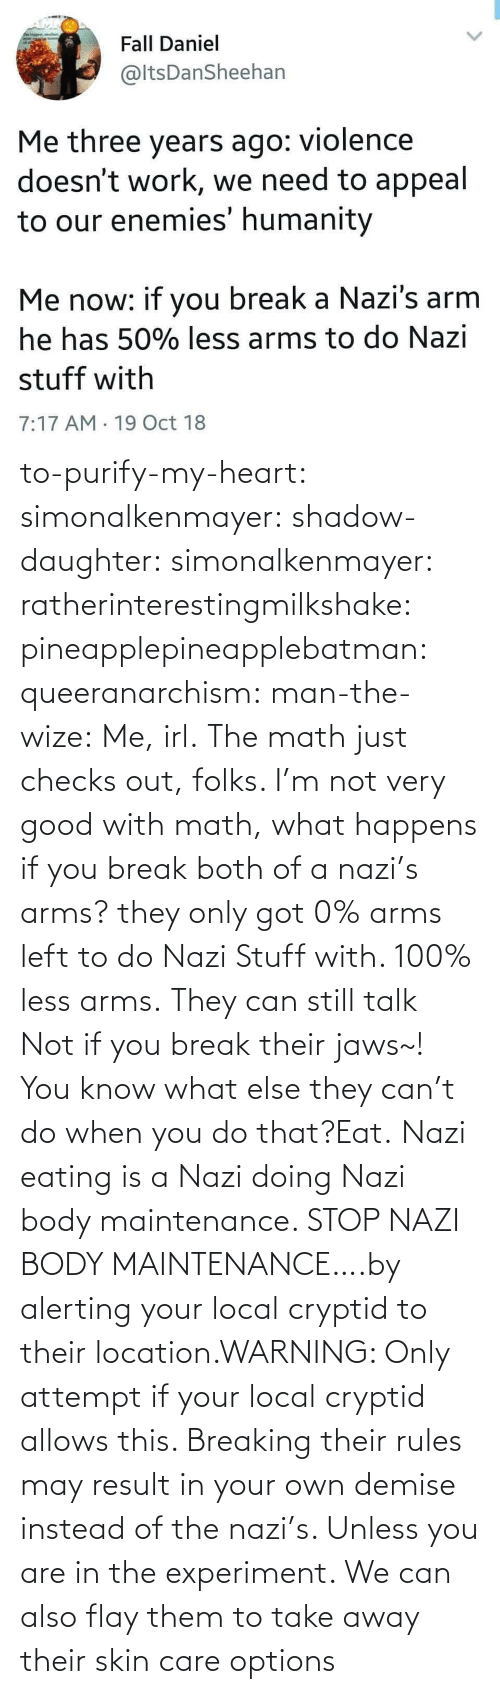 you know what: to-purify-my-heart:  simonalkenmayer:  shadow-daughter: simonalkenmayer:  ratherinterestingmilkshake:  pineapplepineapplebatman:  queeranarchism:  man-the-wize: Me, irl. The math just checks out, folks.     I'm not very good with math, what happens if you break both of a nazi's arms?  they only got 0% arms left to do Nazi Stuff with. 100% less arms.  They can still talk  Not if you break their jaws~!  You know what else they can't do when you do that?Eat.   Nazi eating is a Nazi doing Nazi body maintenance. STOP NAZI BODY MAINTENANCE….by alerting your local cryptid to their location.WARNING: Only attempt if your local cryptid allows this. Breaking their rules may result in your own demise instead of the nazi's. Unless you are in the experiment.    We can also flay them to take away their skin care options